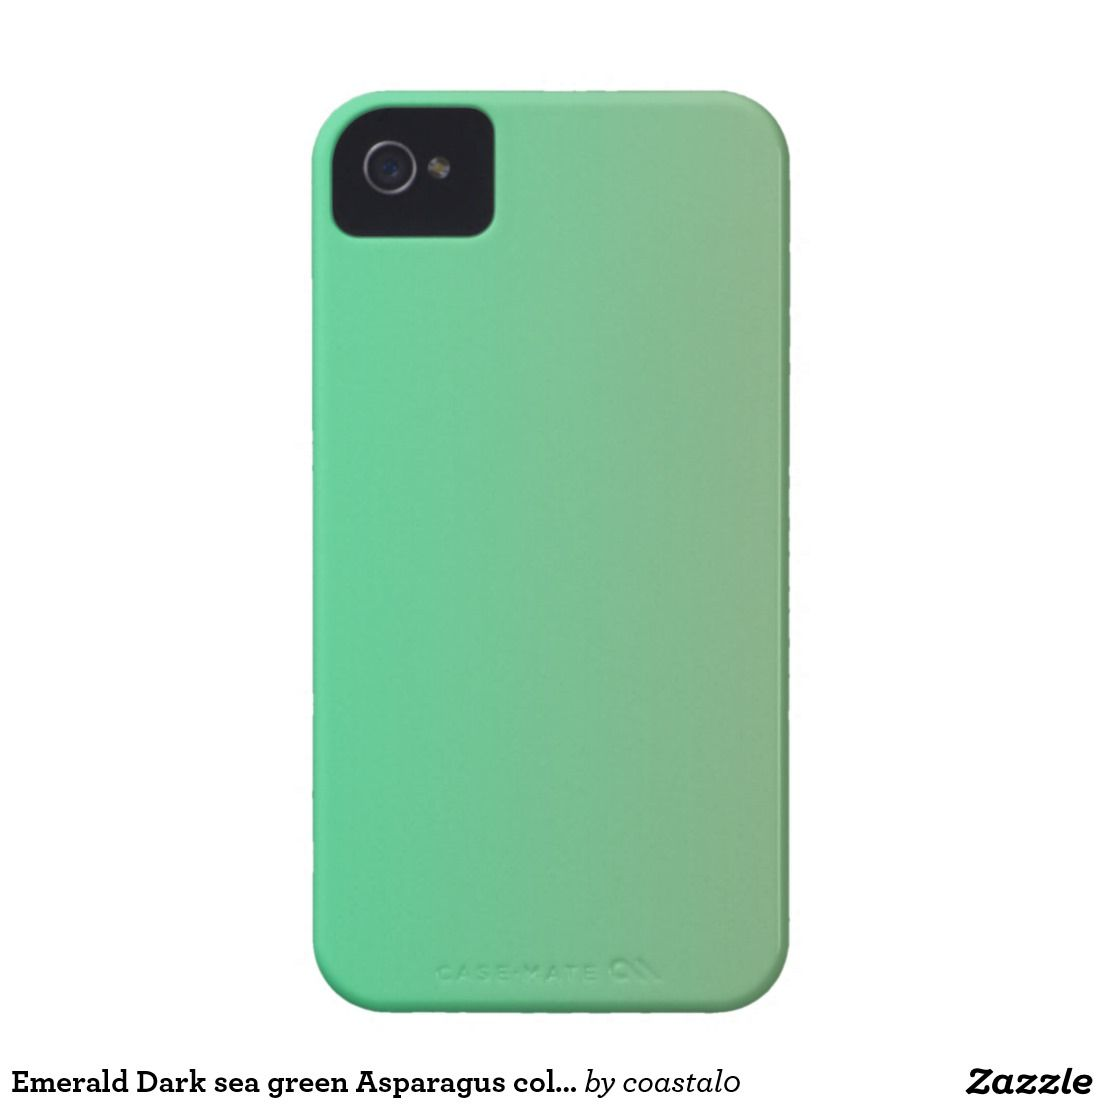 Emerald Dark Sea Green Asparagus Color